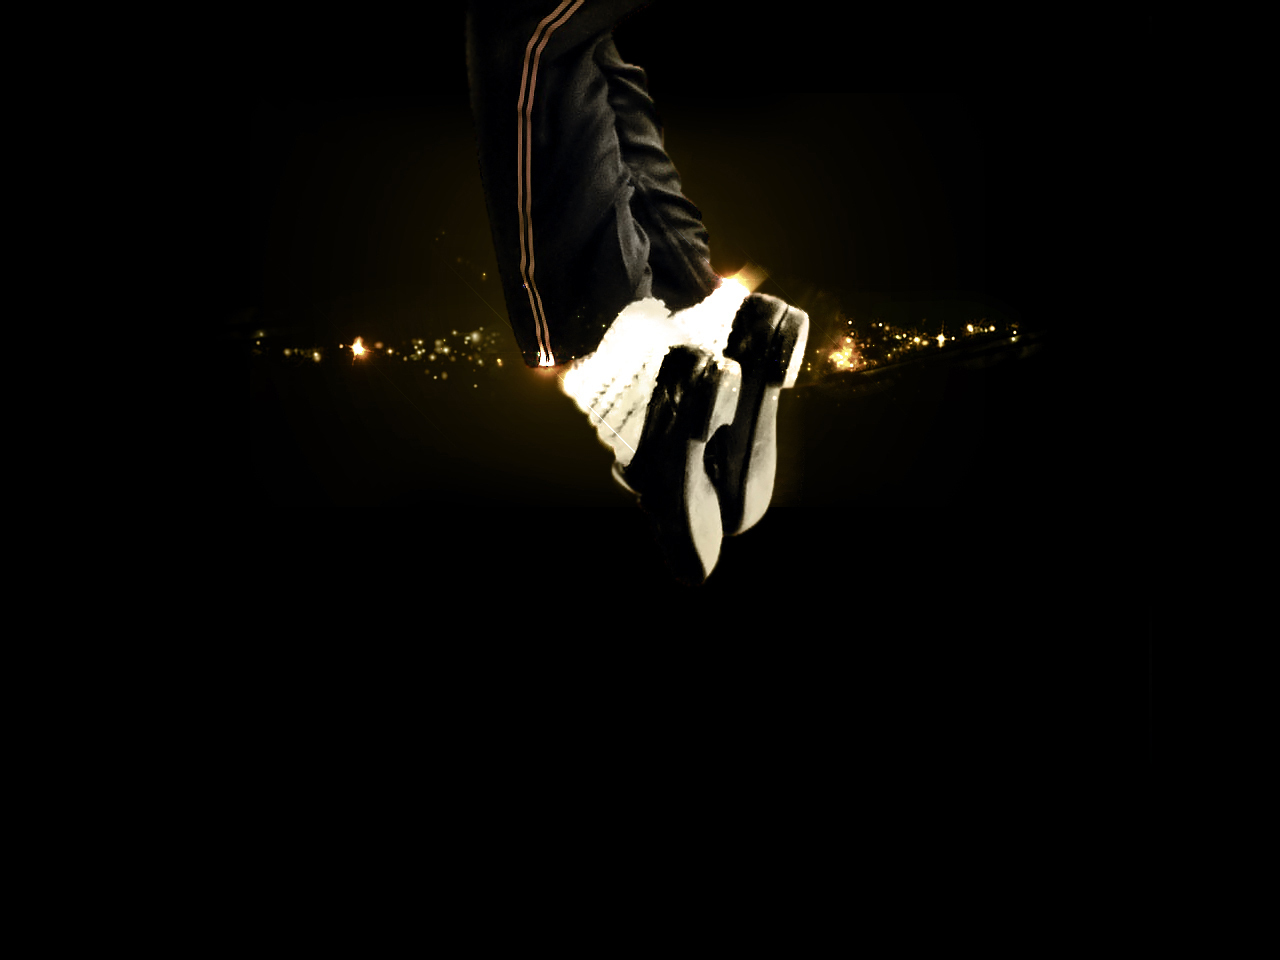 Free Download Michael Jackson Moonwalk Wallpapers For Iphone